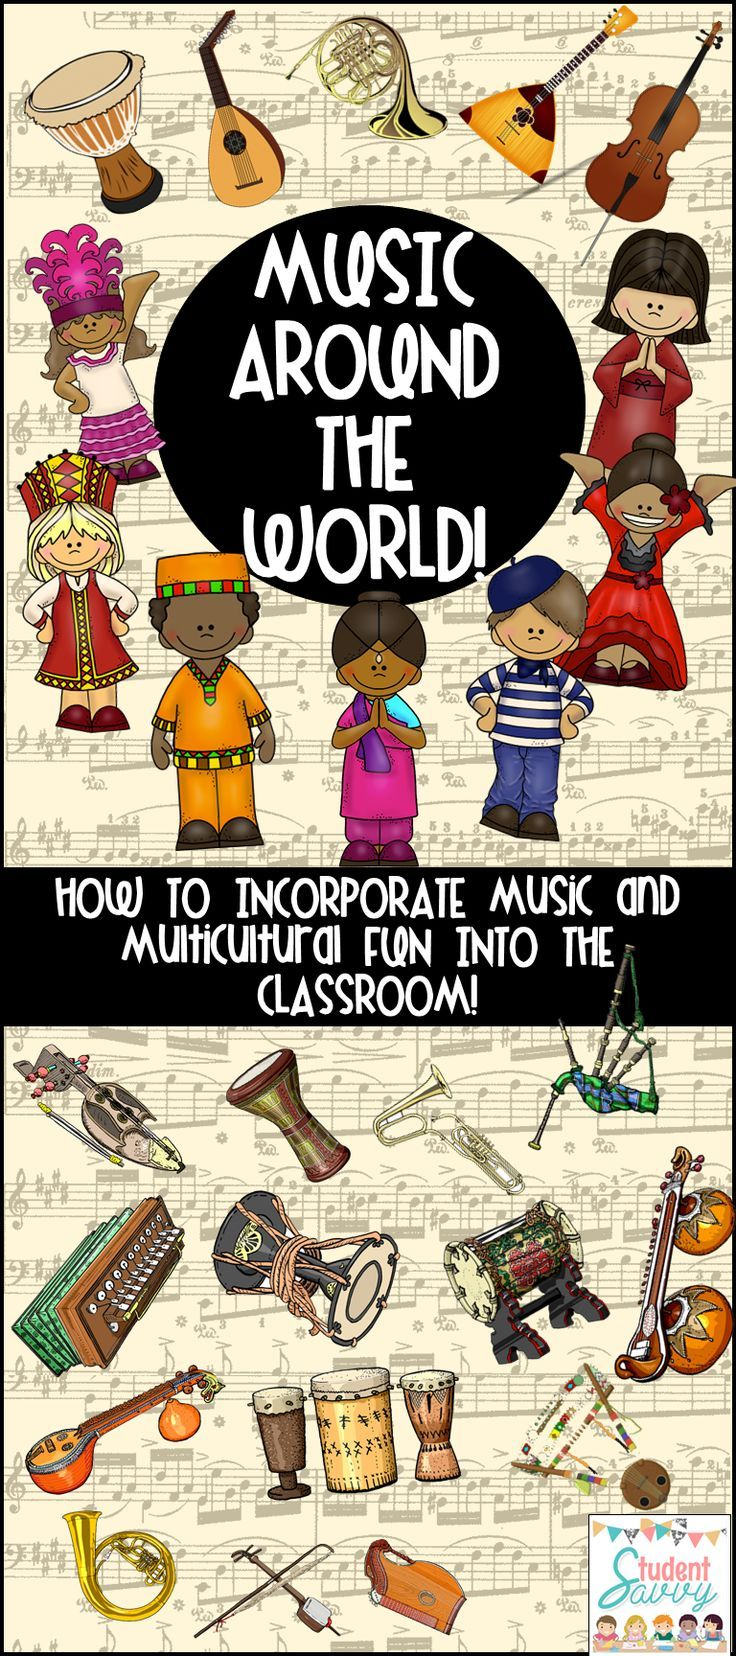 By integrating music into your classroom, you are introducing a new take on that subject. Music is relating and filled with emotion. When learning about a new culture, why not show your students the music, activities, and customs of that culture. Students need to be given an opportunity to see that a culture is just another group of people, just like them. Not a definition to remember on a multiple choice exam.